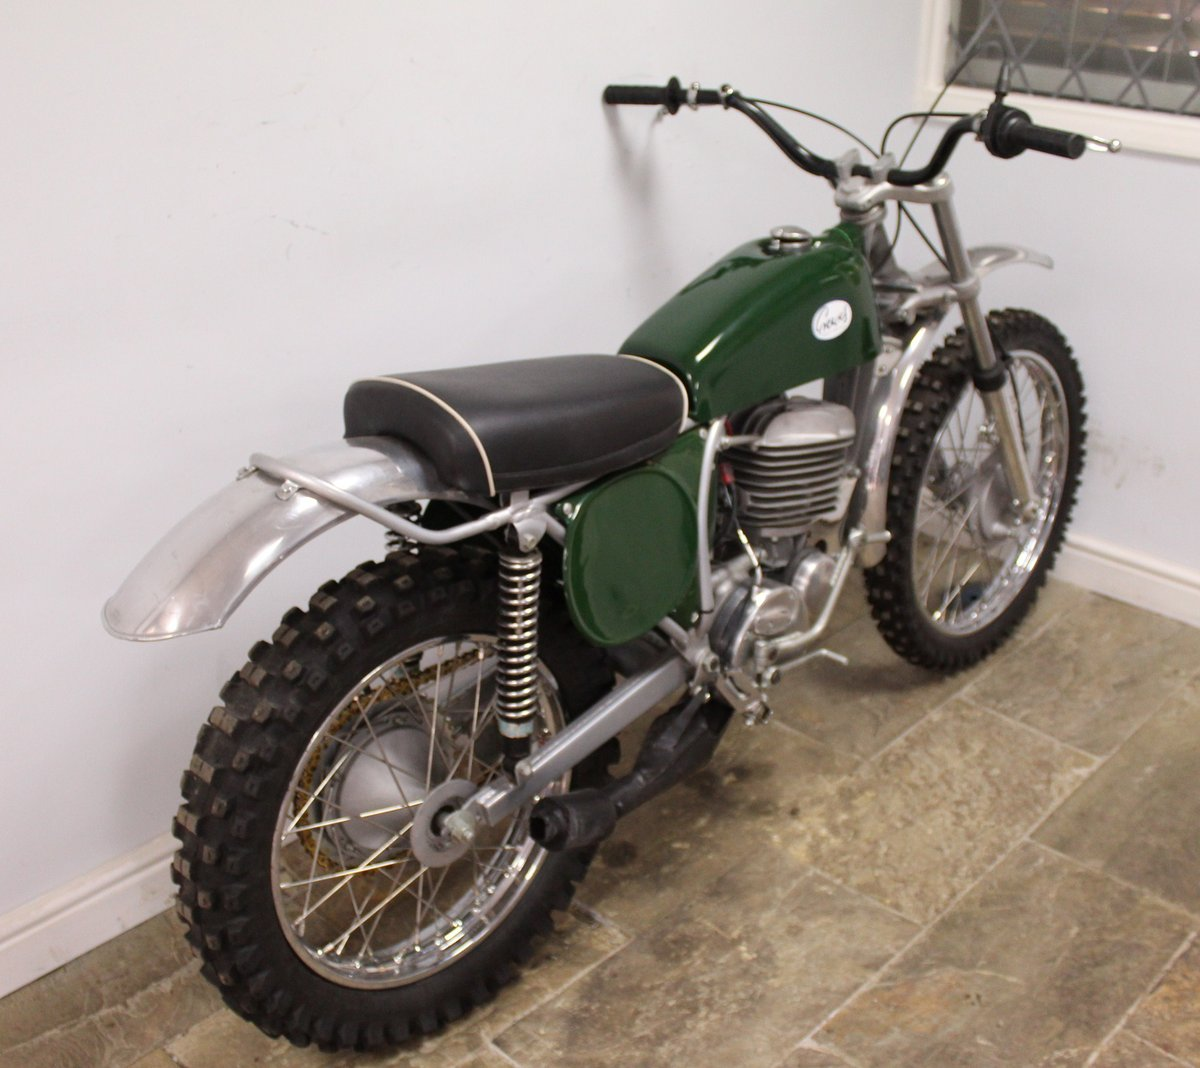 1968 Greeves MX24  MK4 250 cc Challenger RARE SUPERB SOLD (picture 2 of 6)